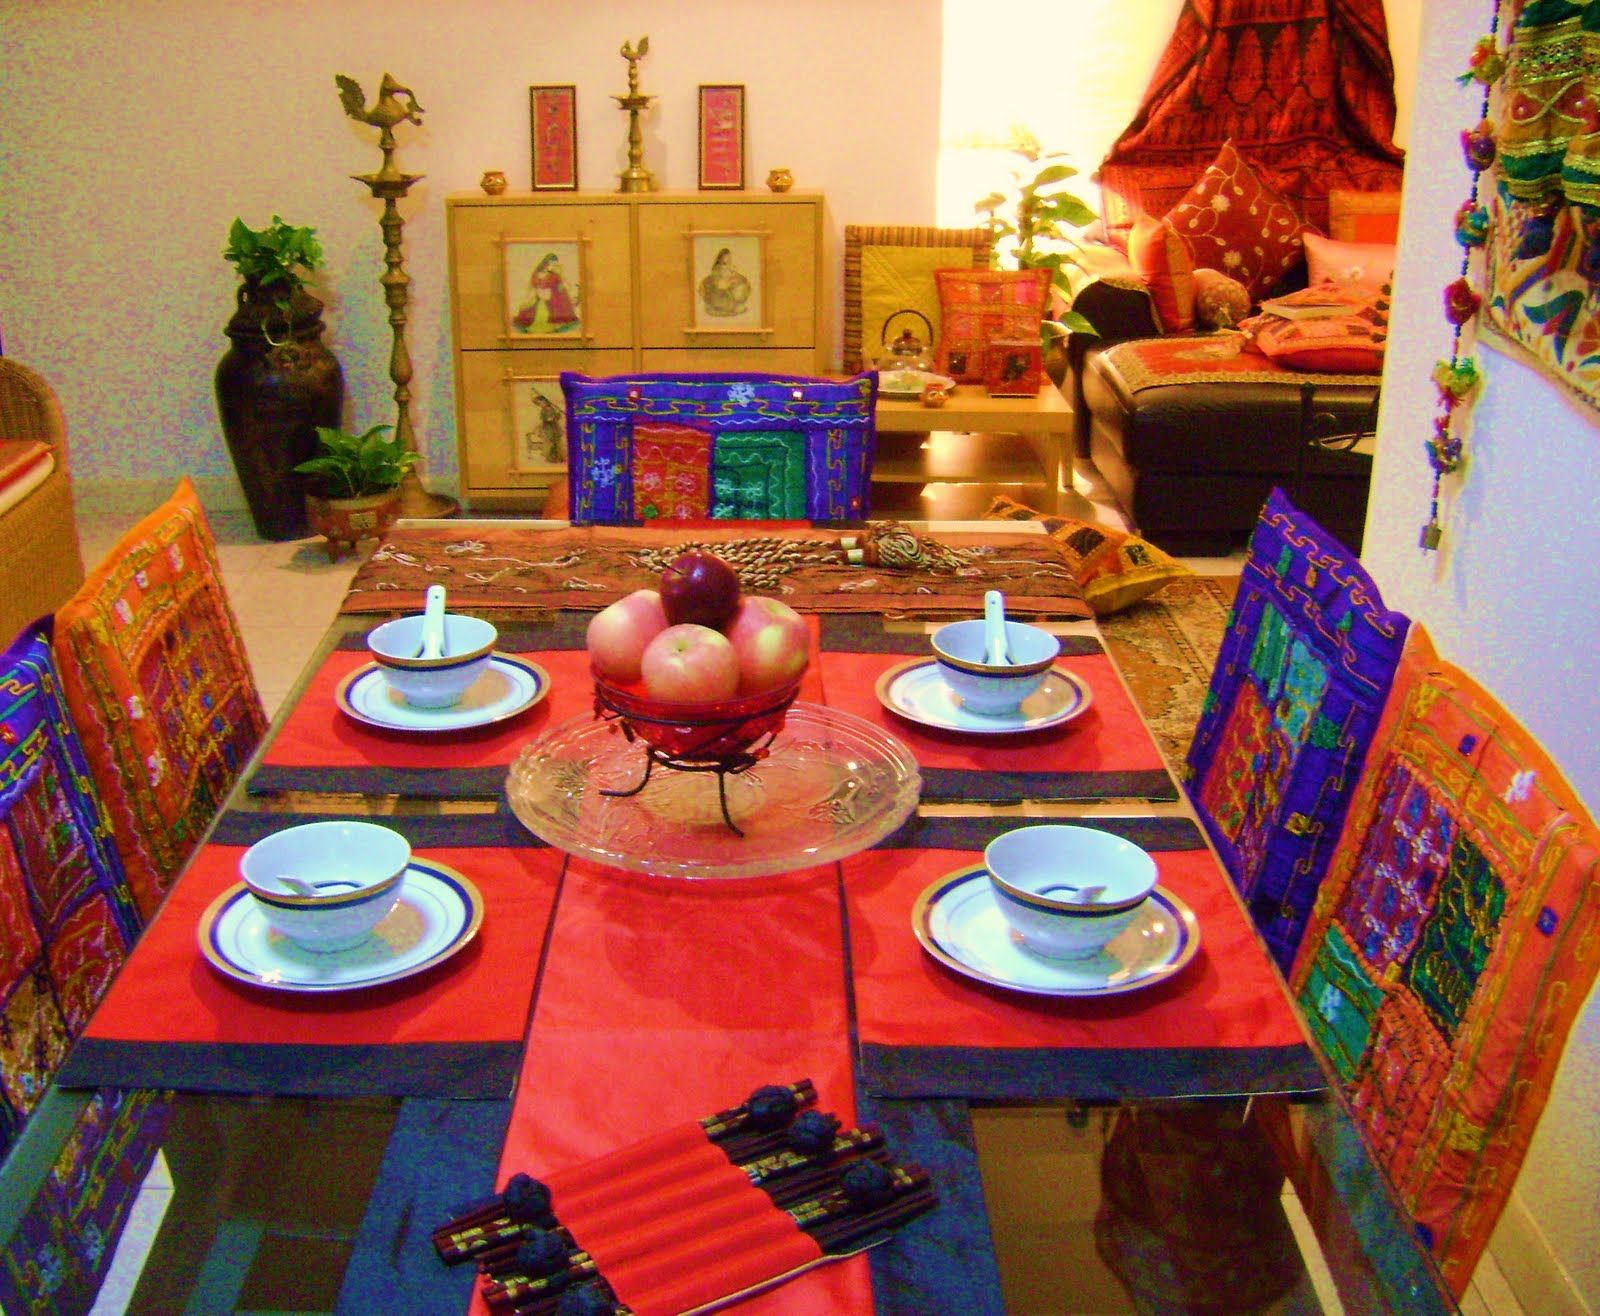 Red Indian Home Decor Design Ideas Home Decor Pinterest Google Images Indian